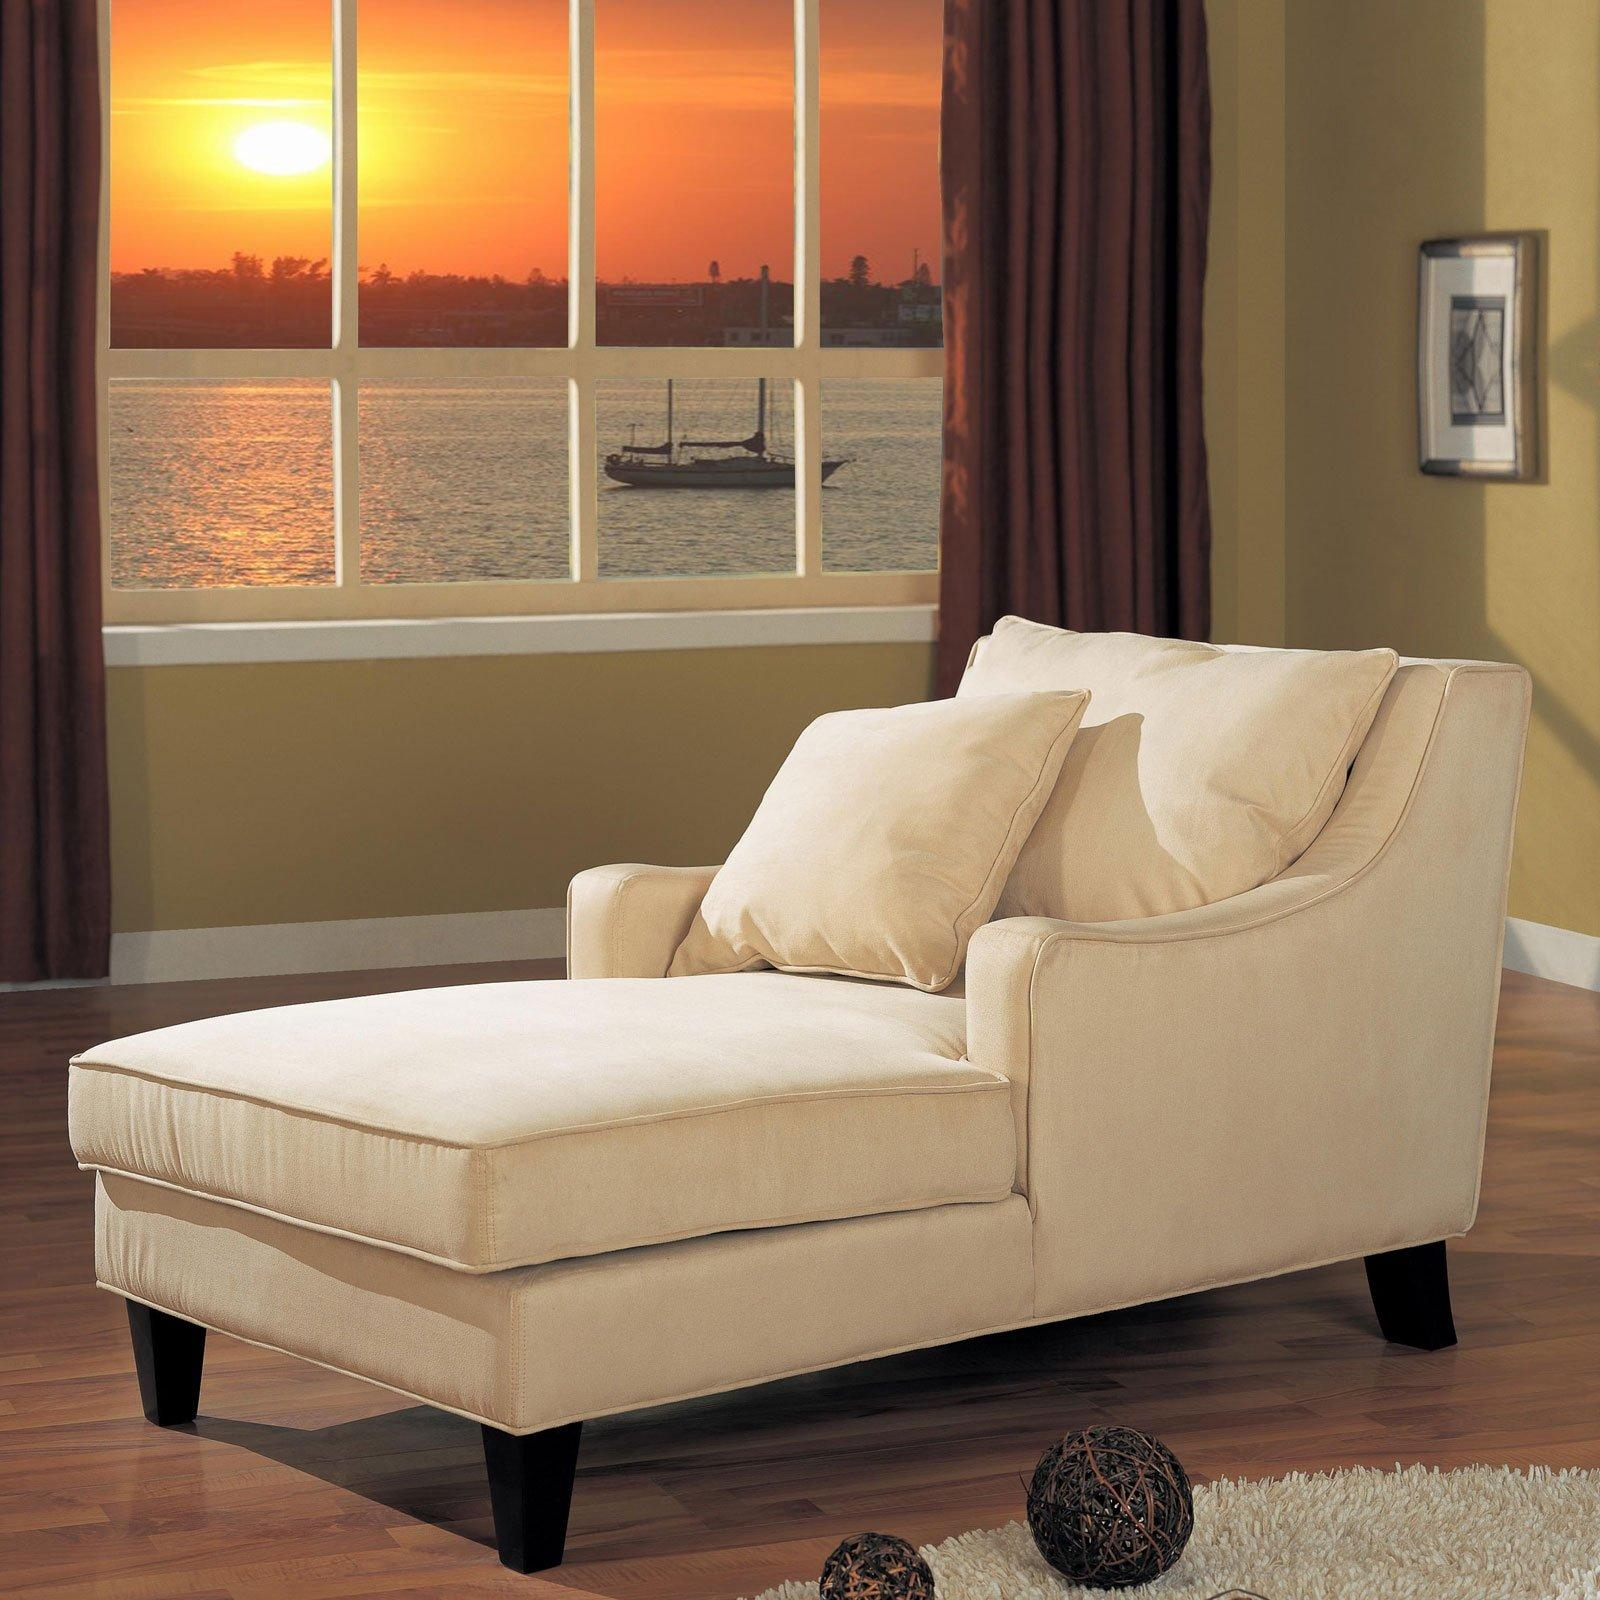 Sofa With Chaise Lounge (Image 16 of 20)